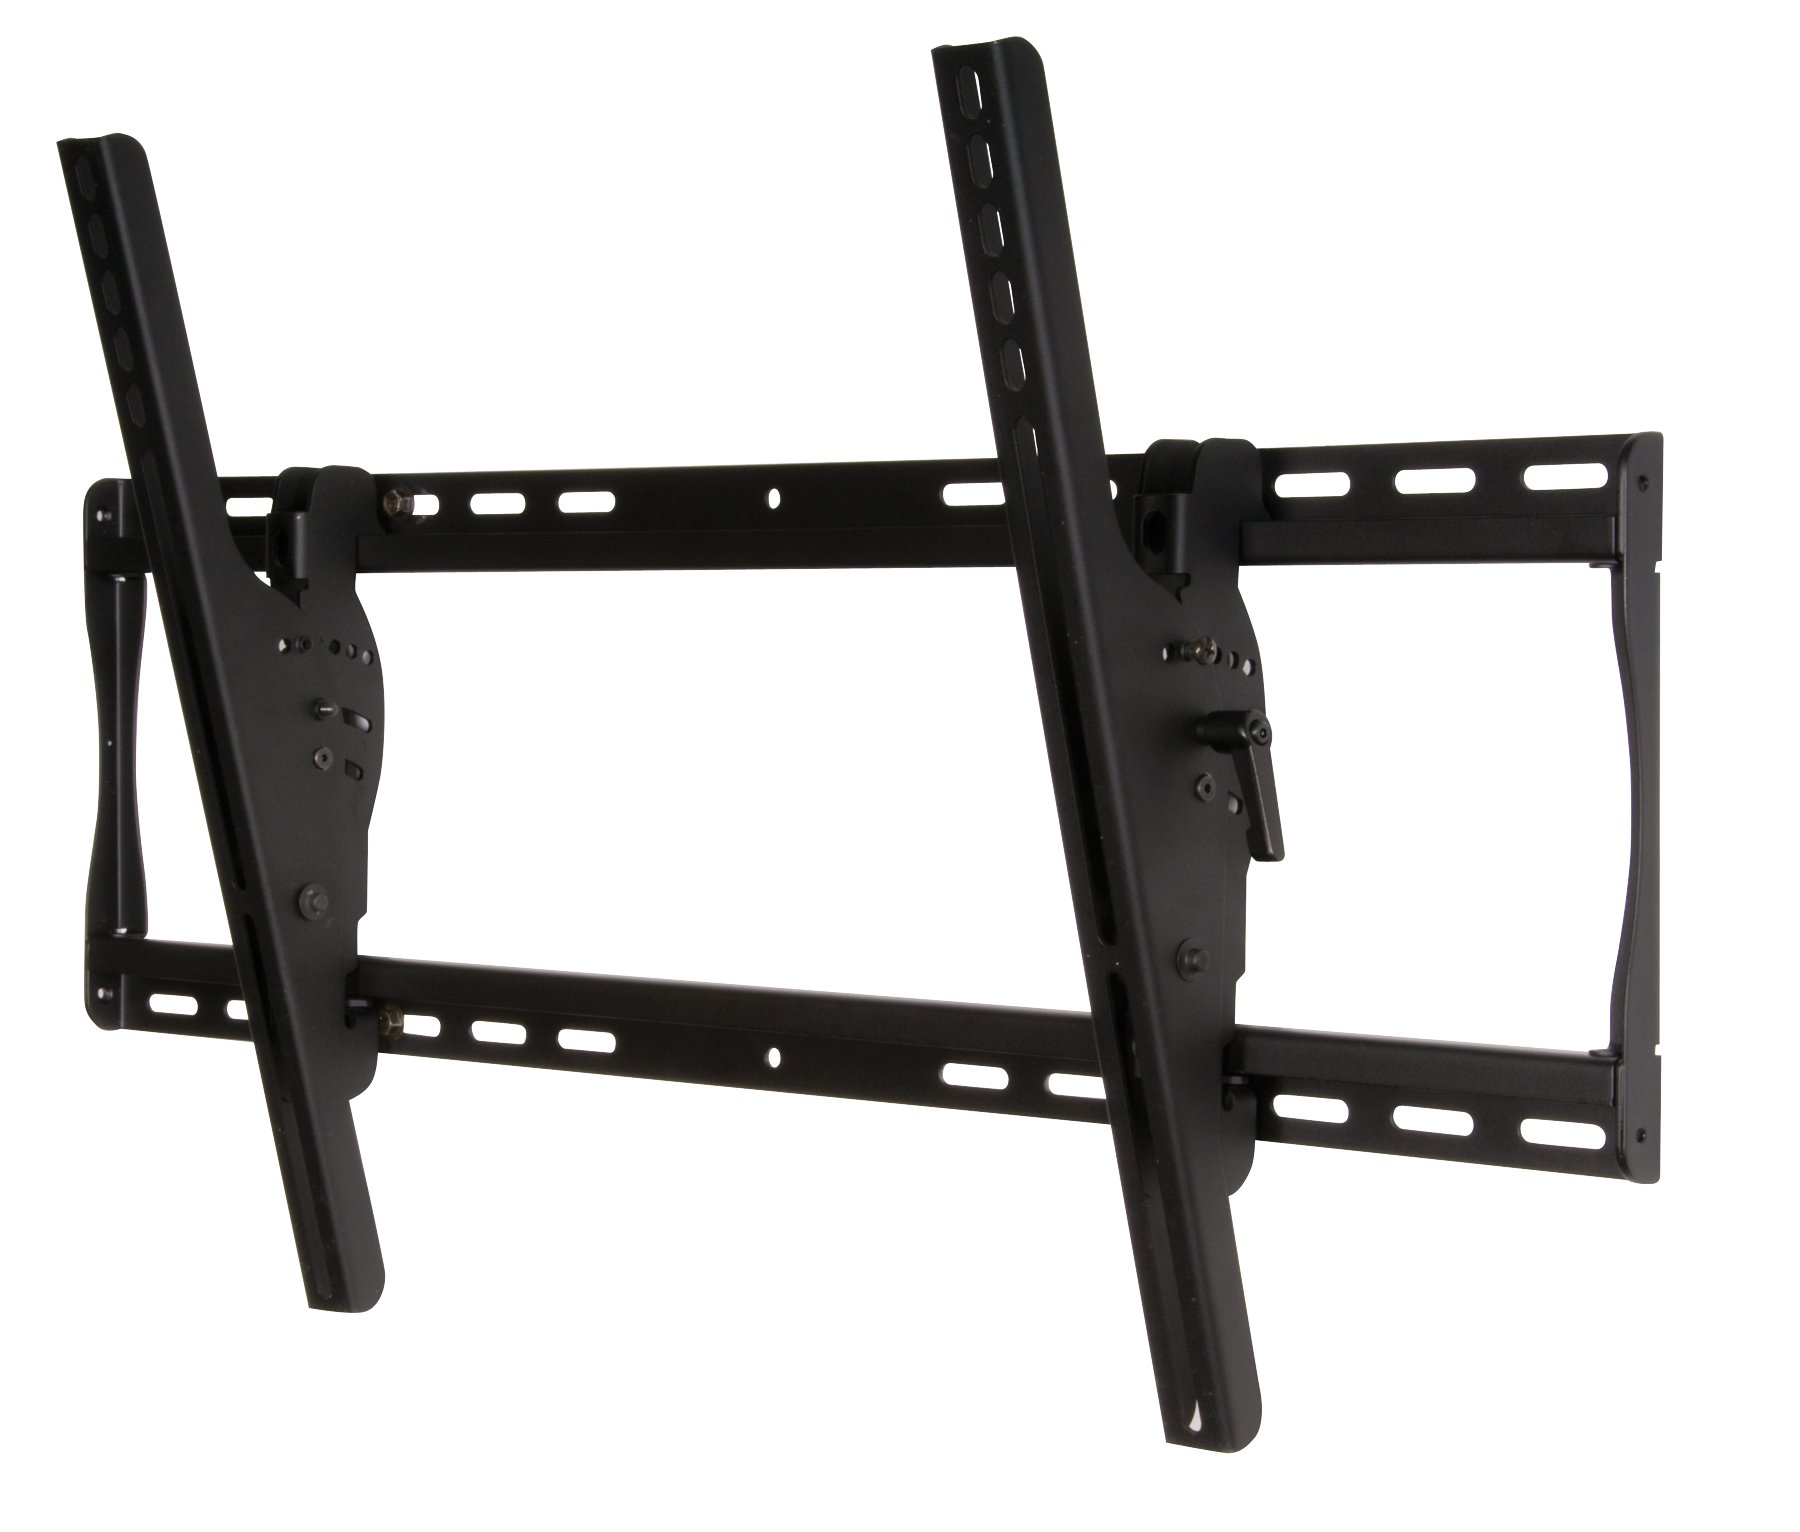 Peerless ST650P Tilt Wall Mount for 39 to 75-inch Displays, Black